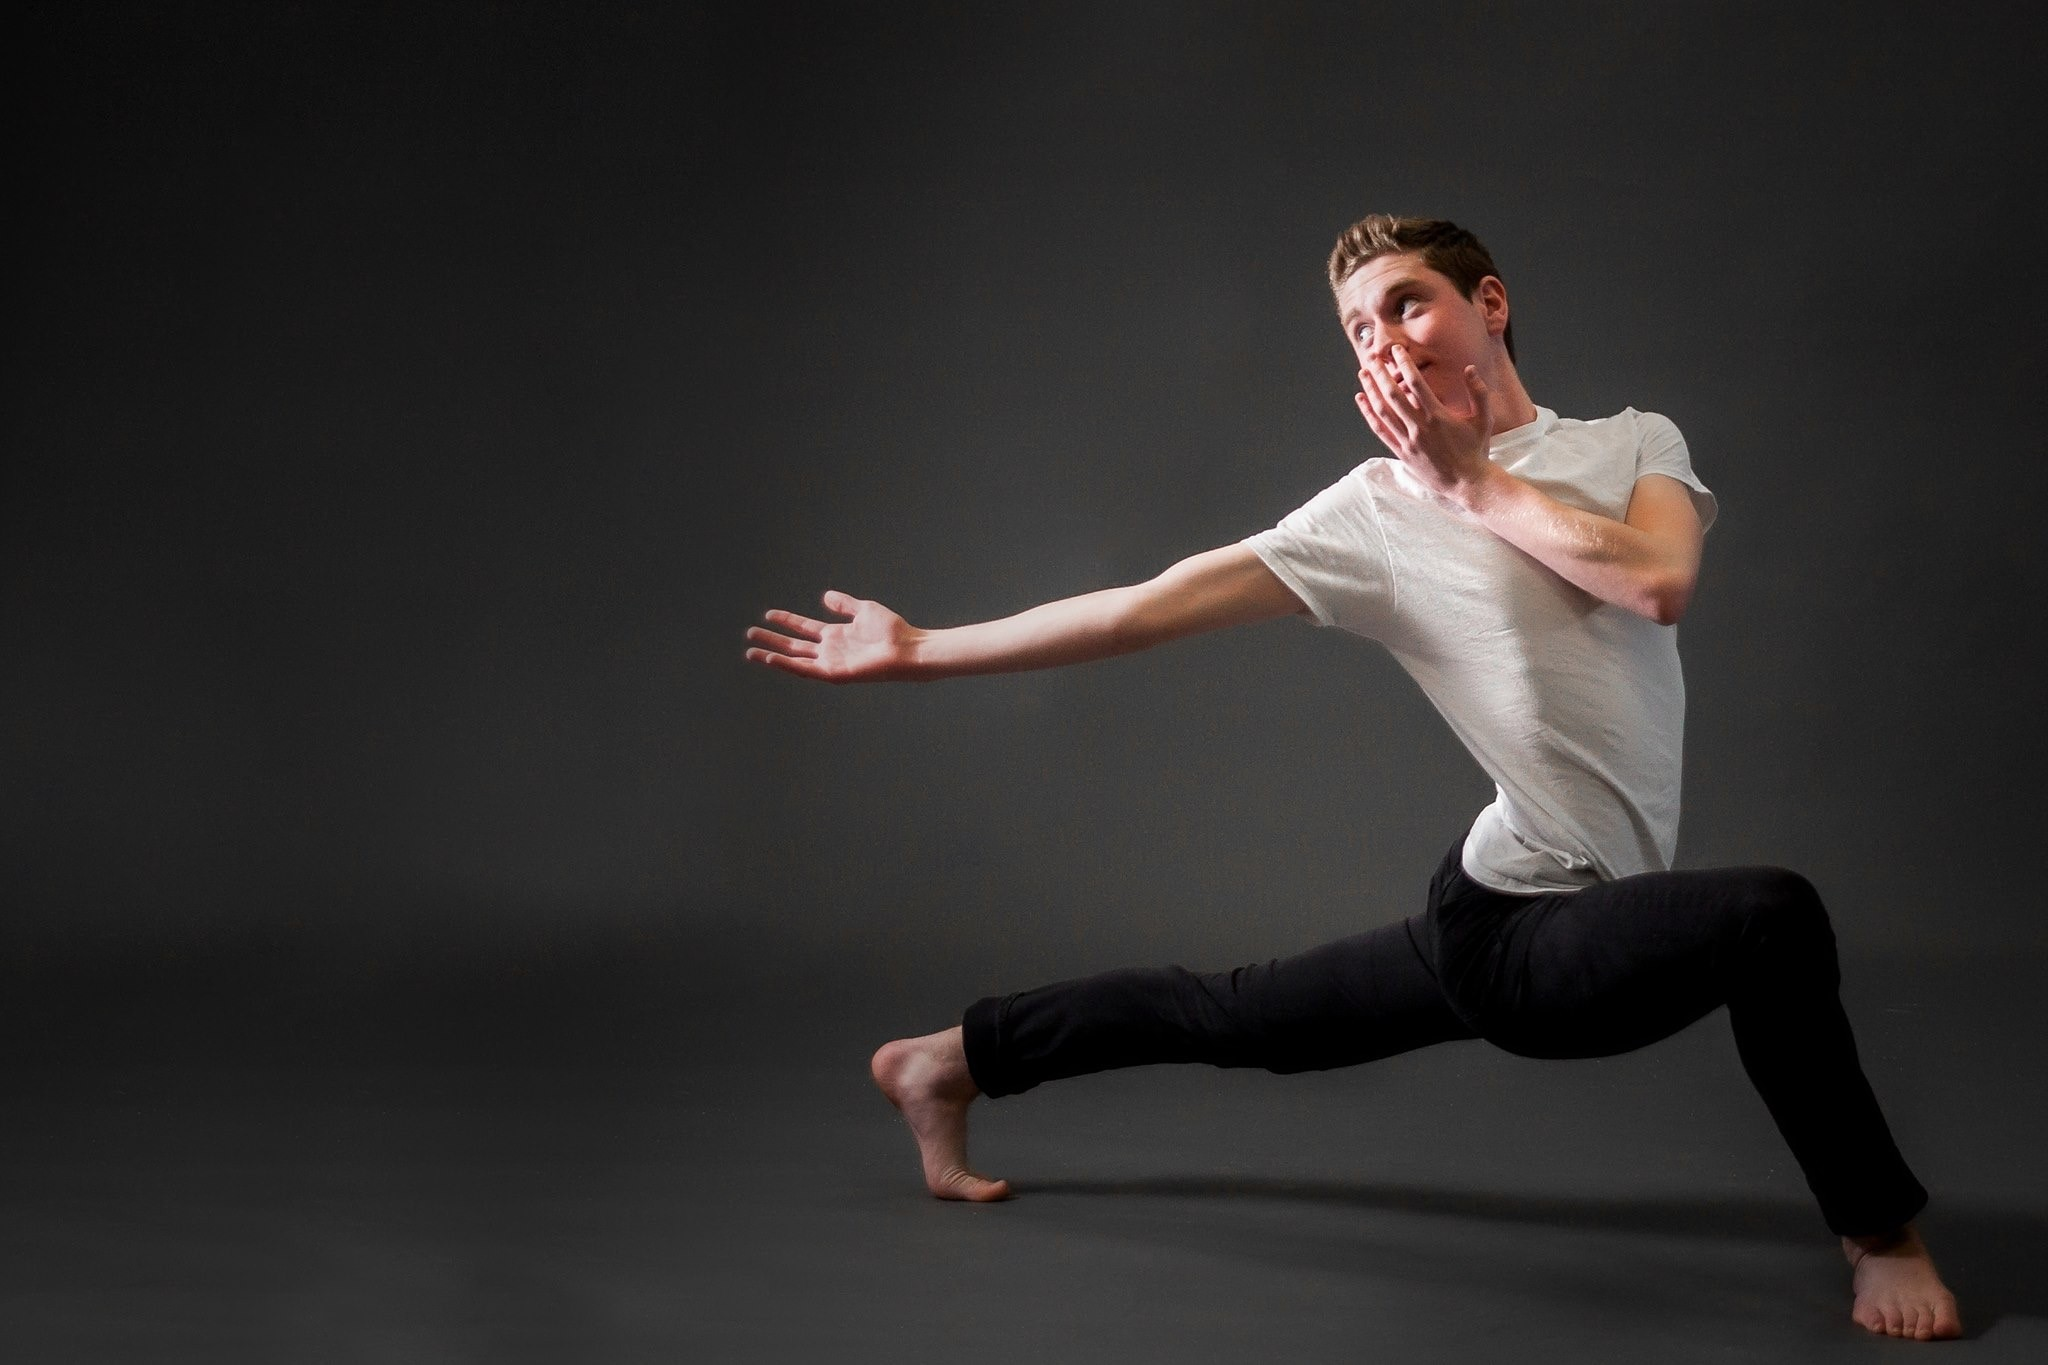 Jared Stern, of Seaford, studies dance at the Long Island High School for the Arts.